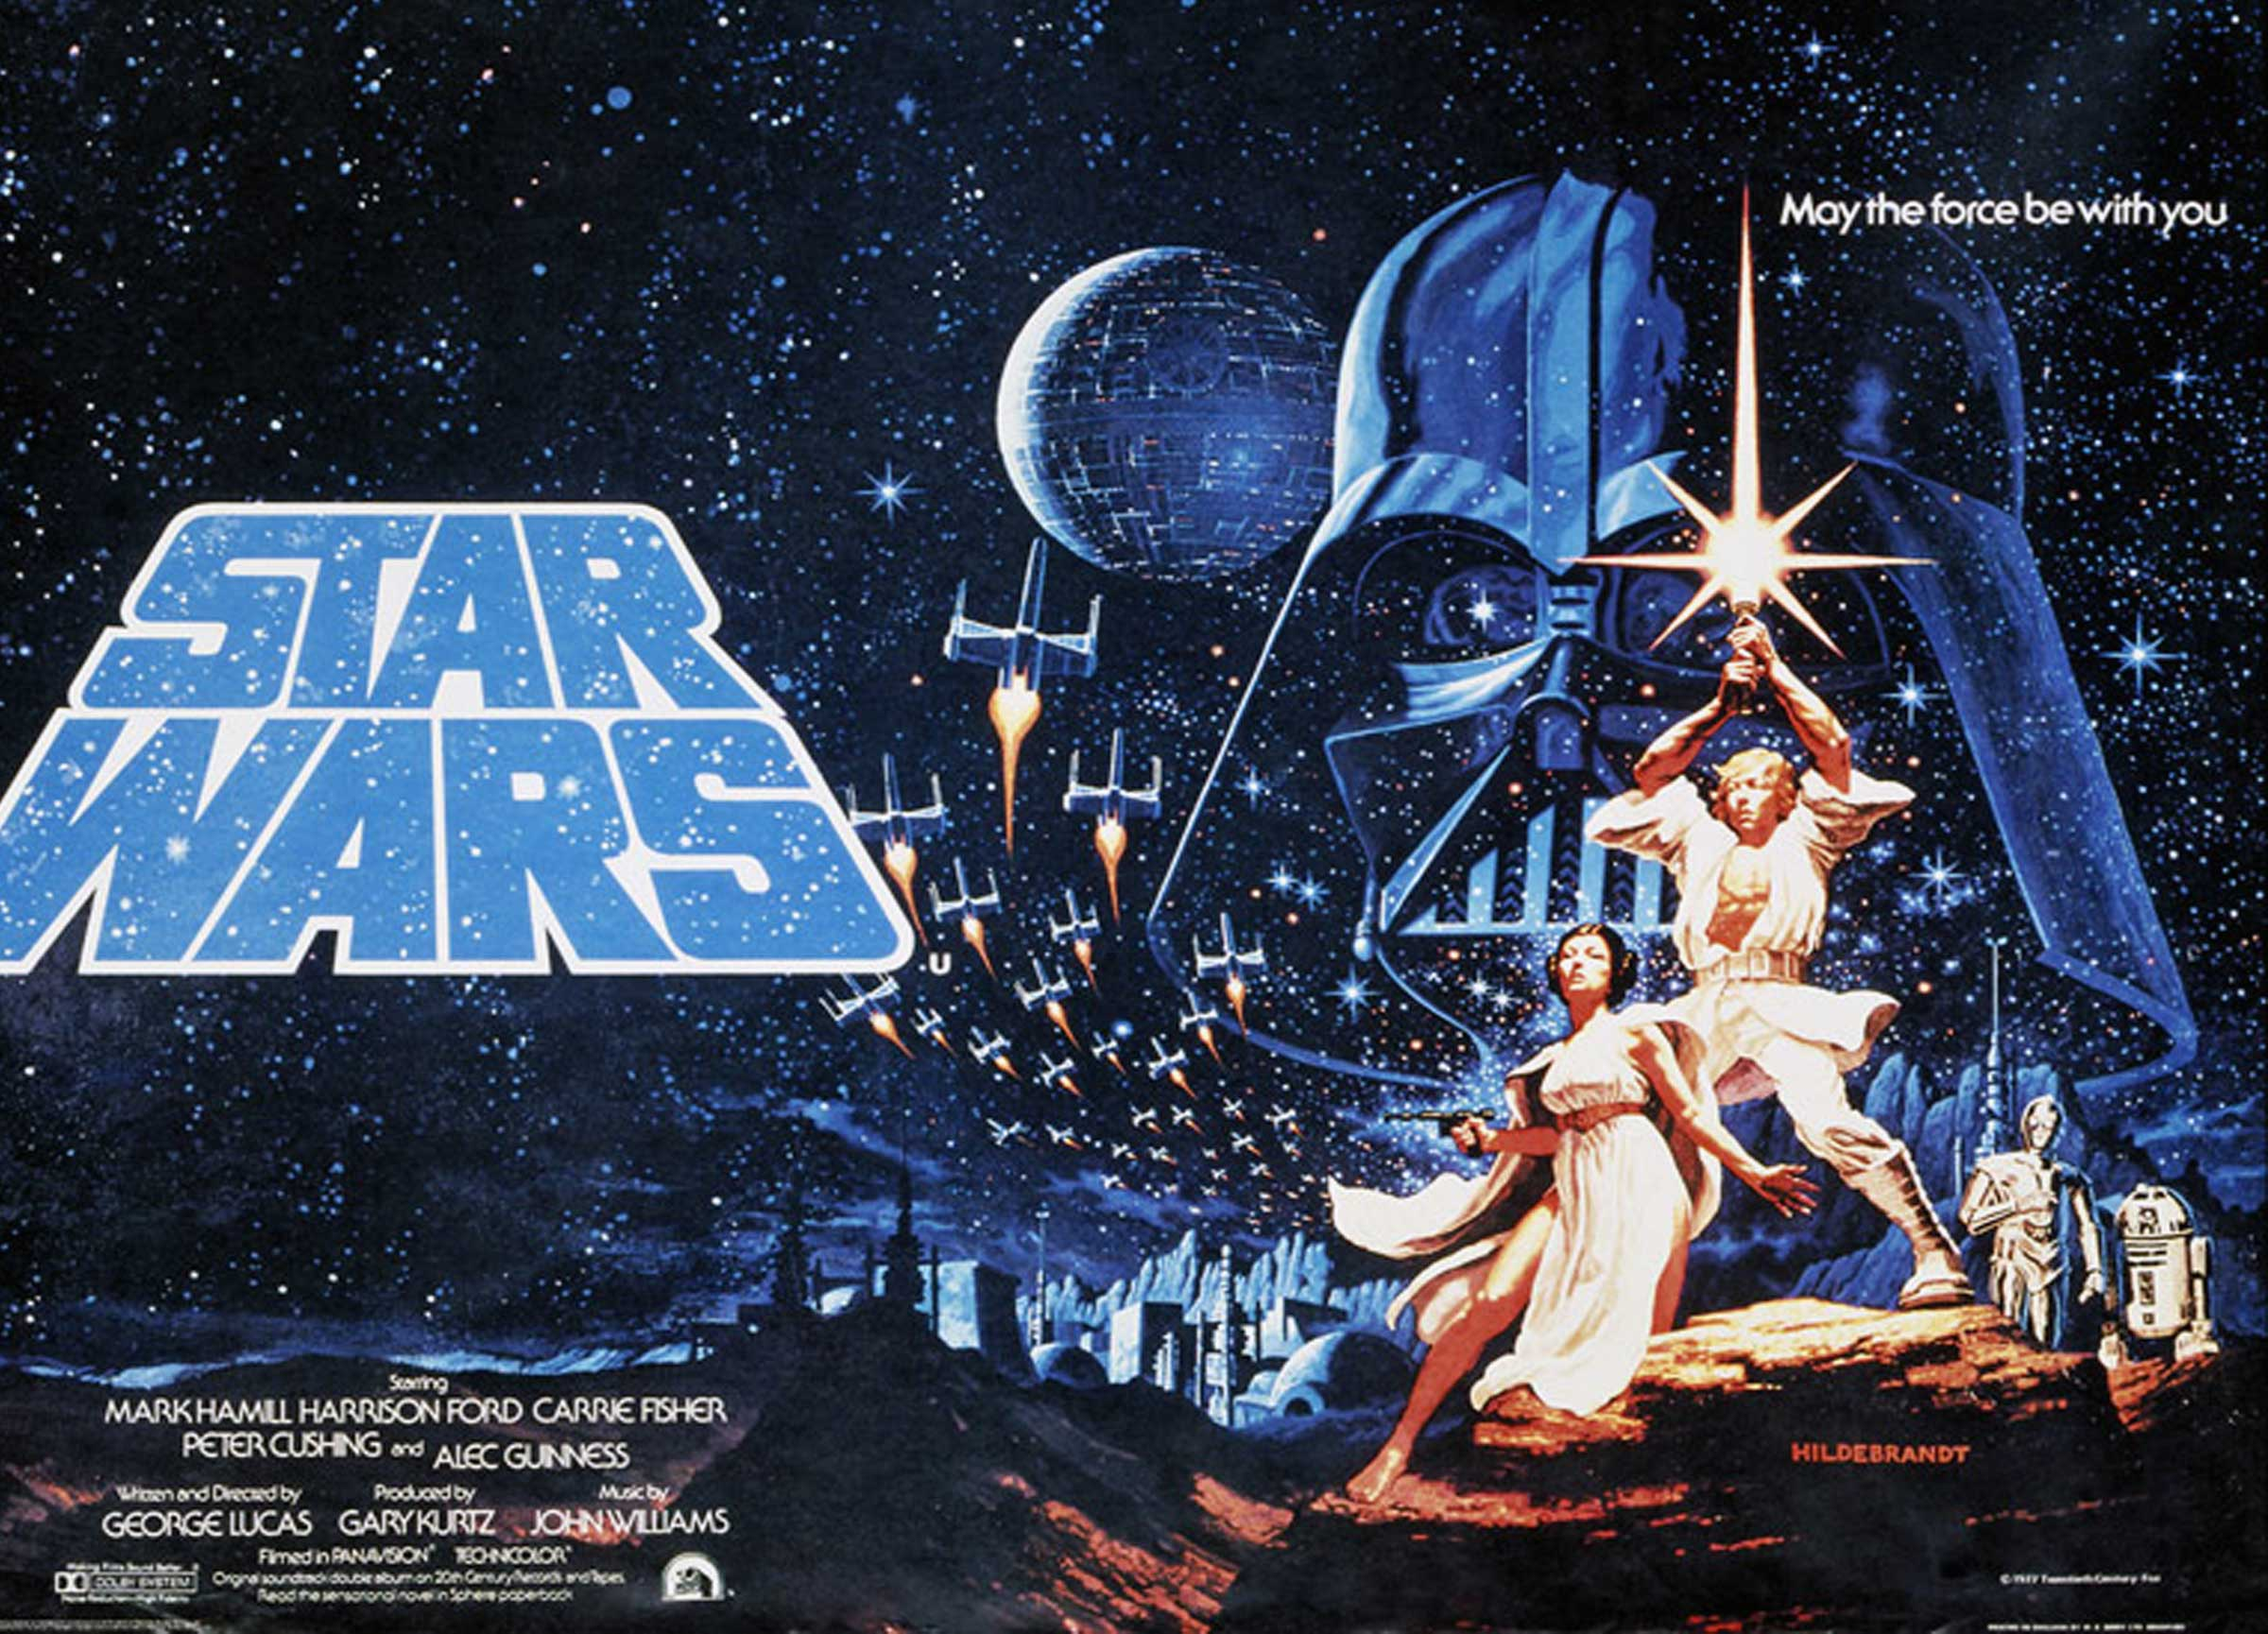 Drawn poster star wars The Poster characters star in